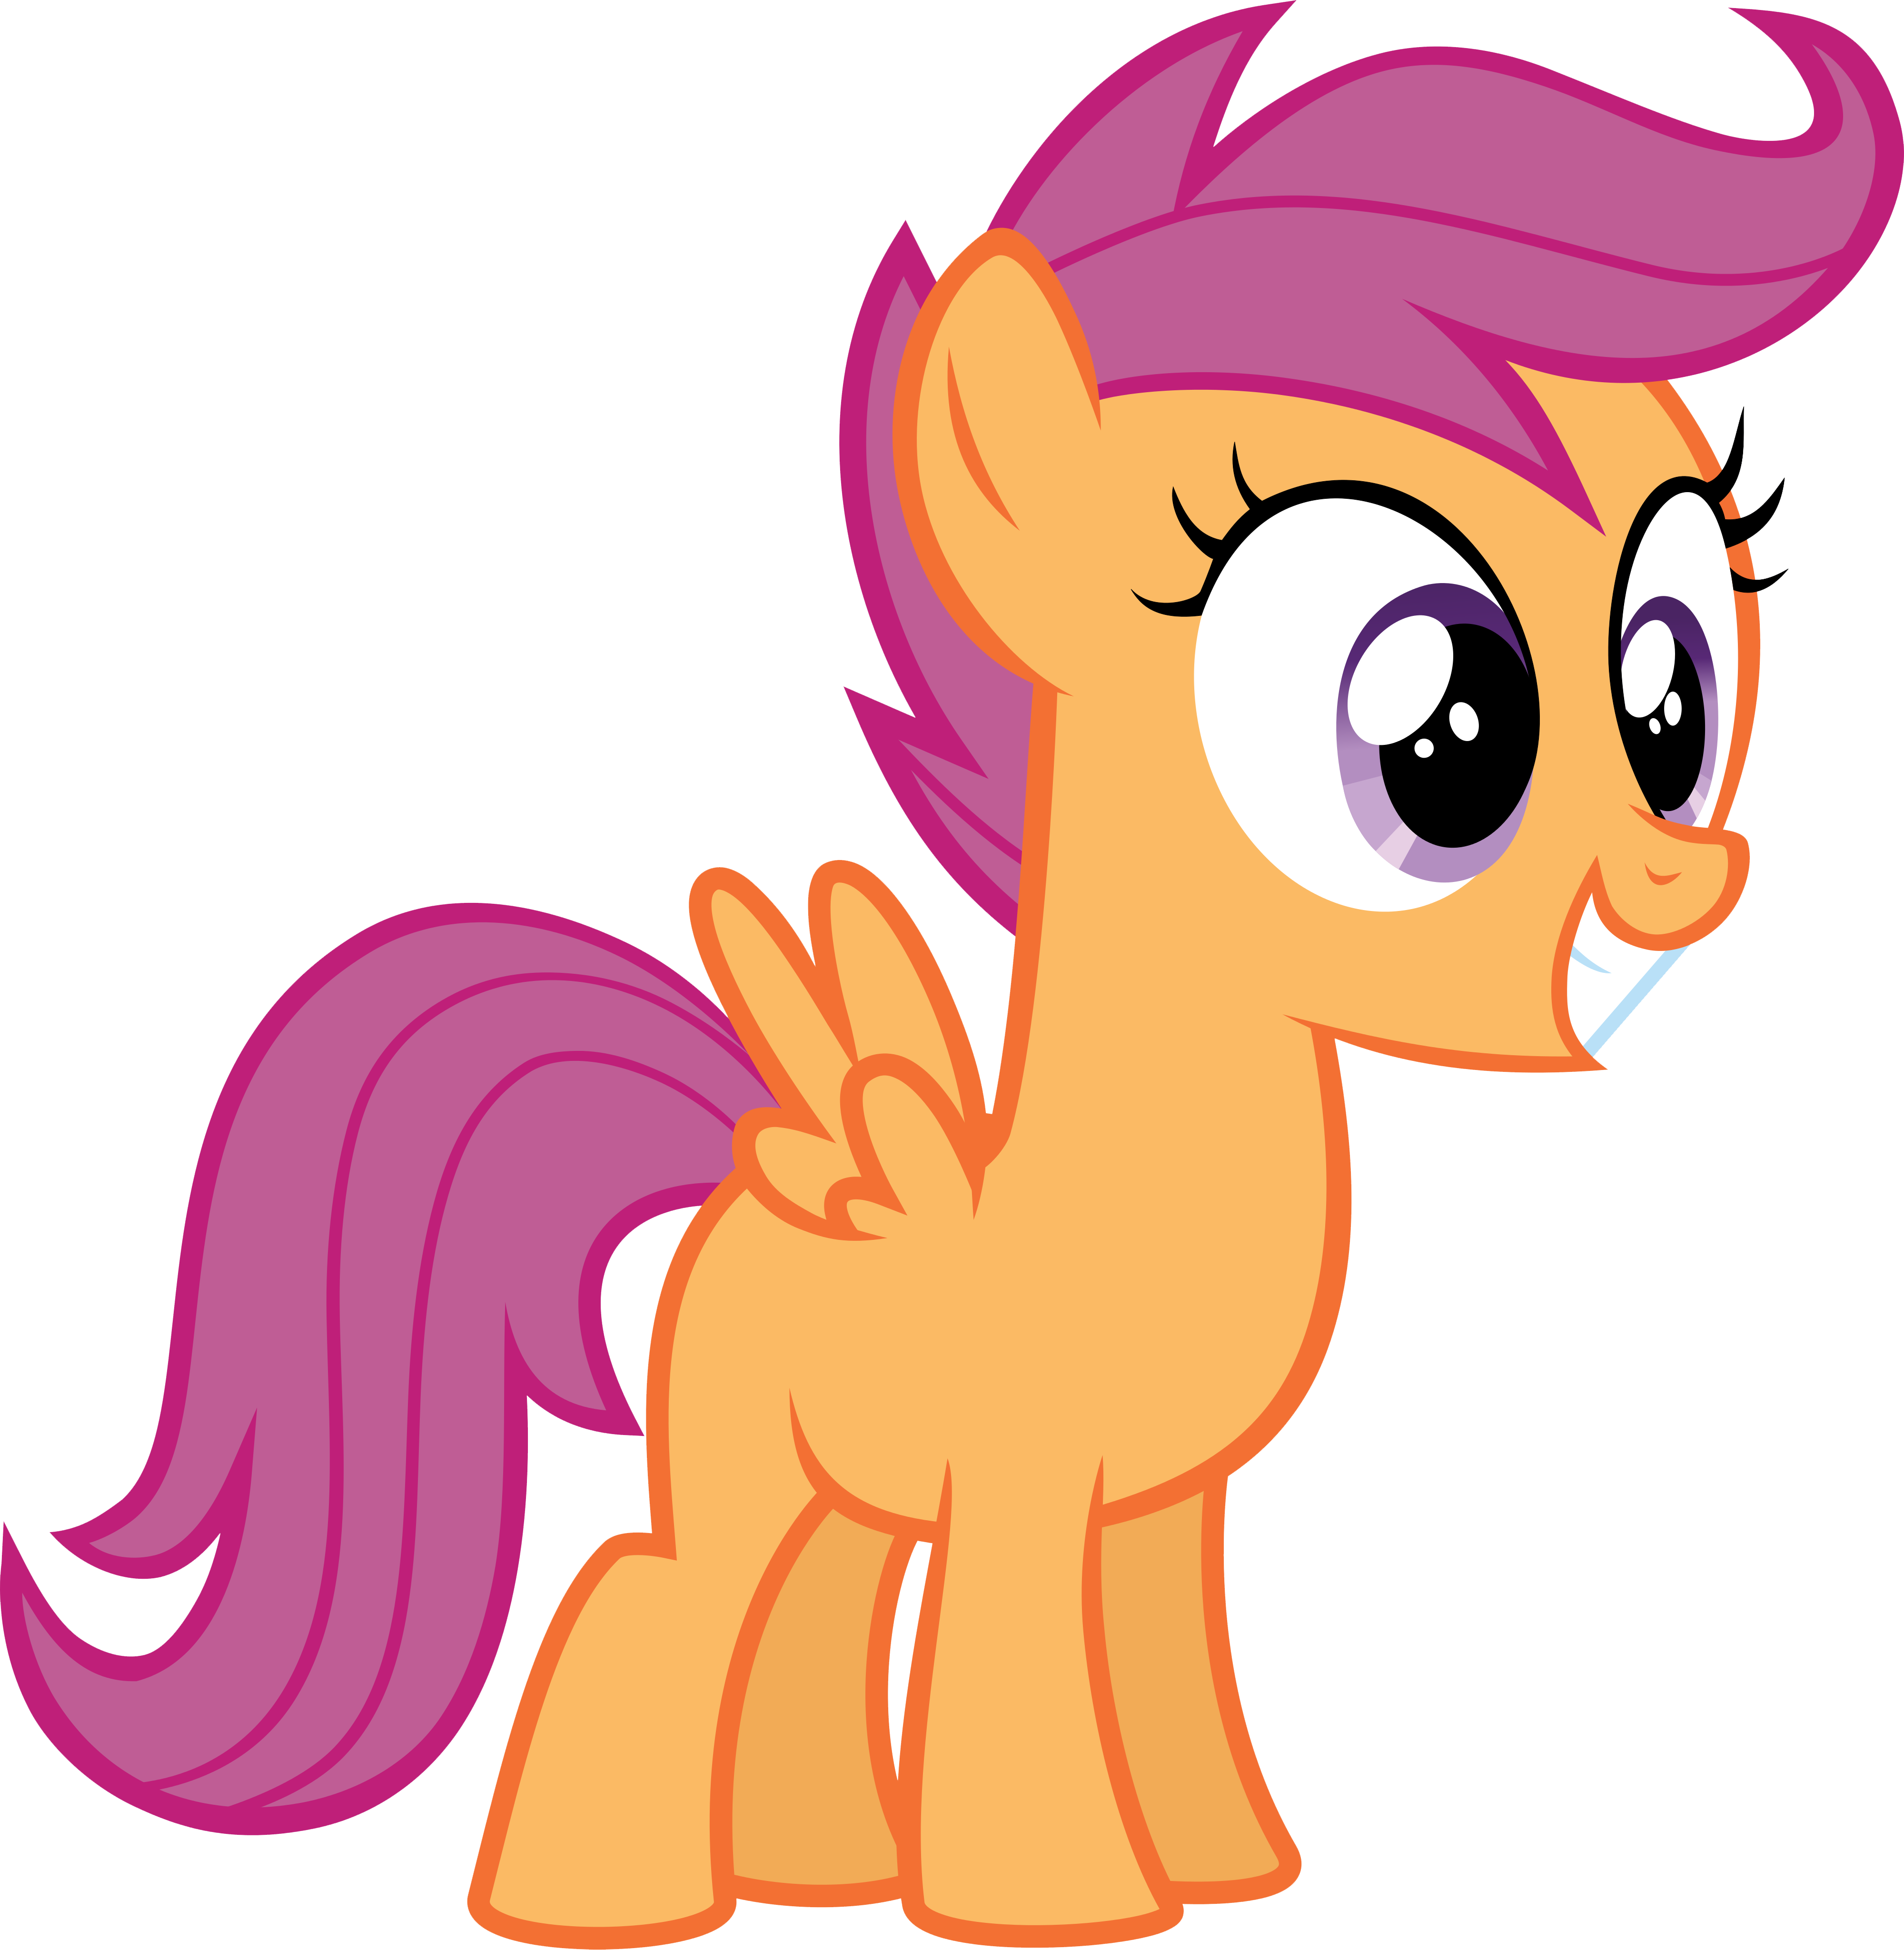 Liver clipart happy. Scootaloo is ha little